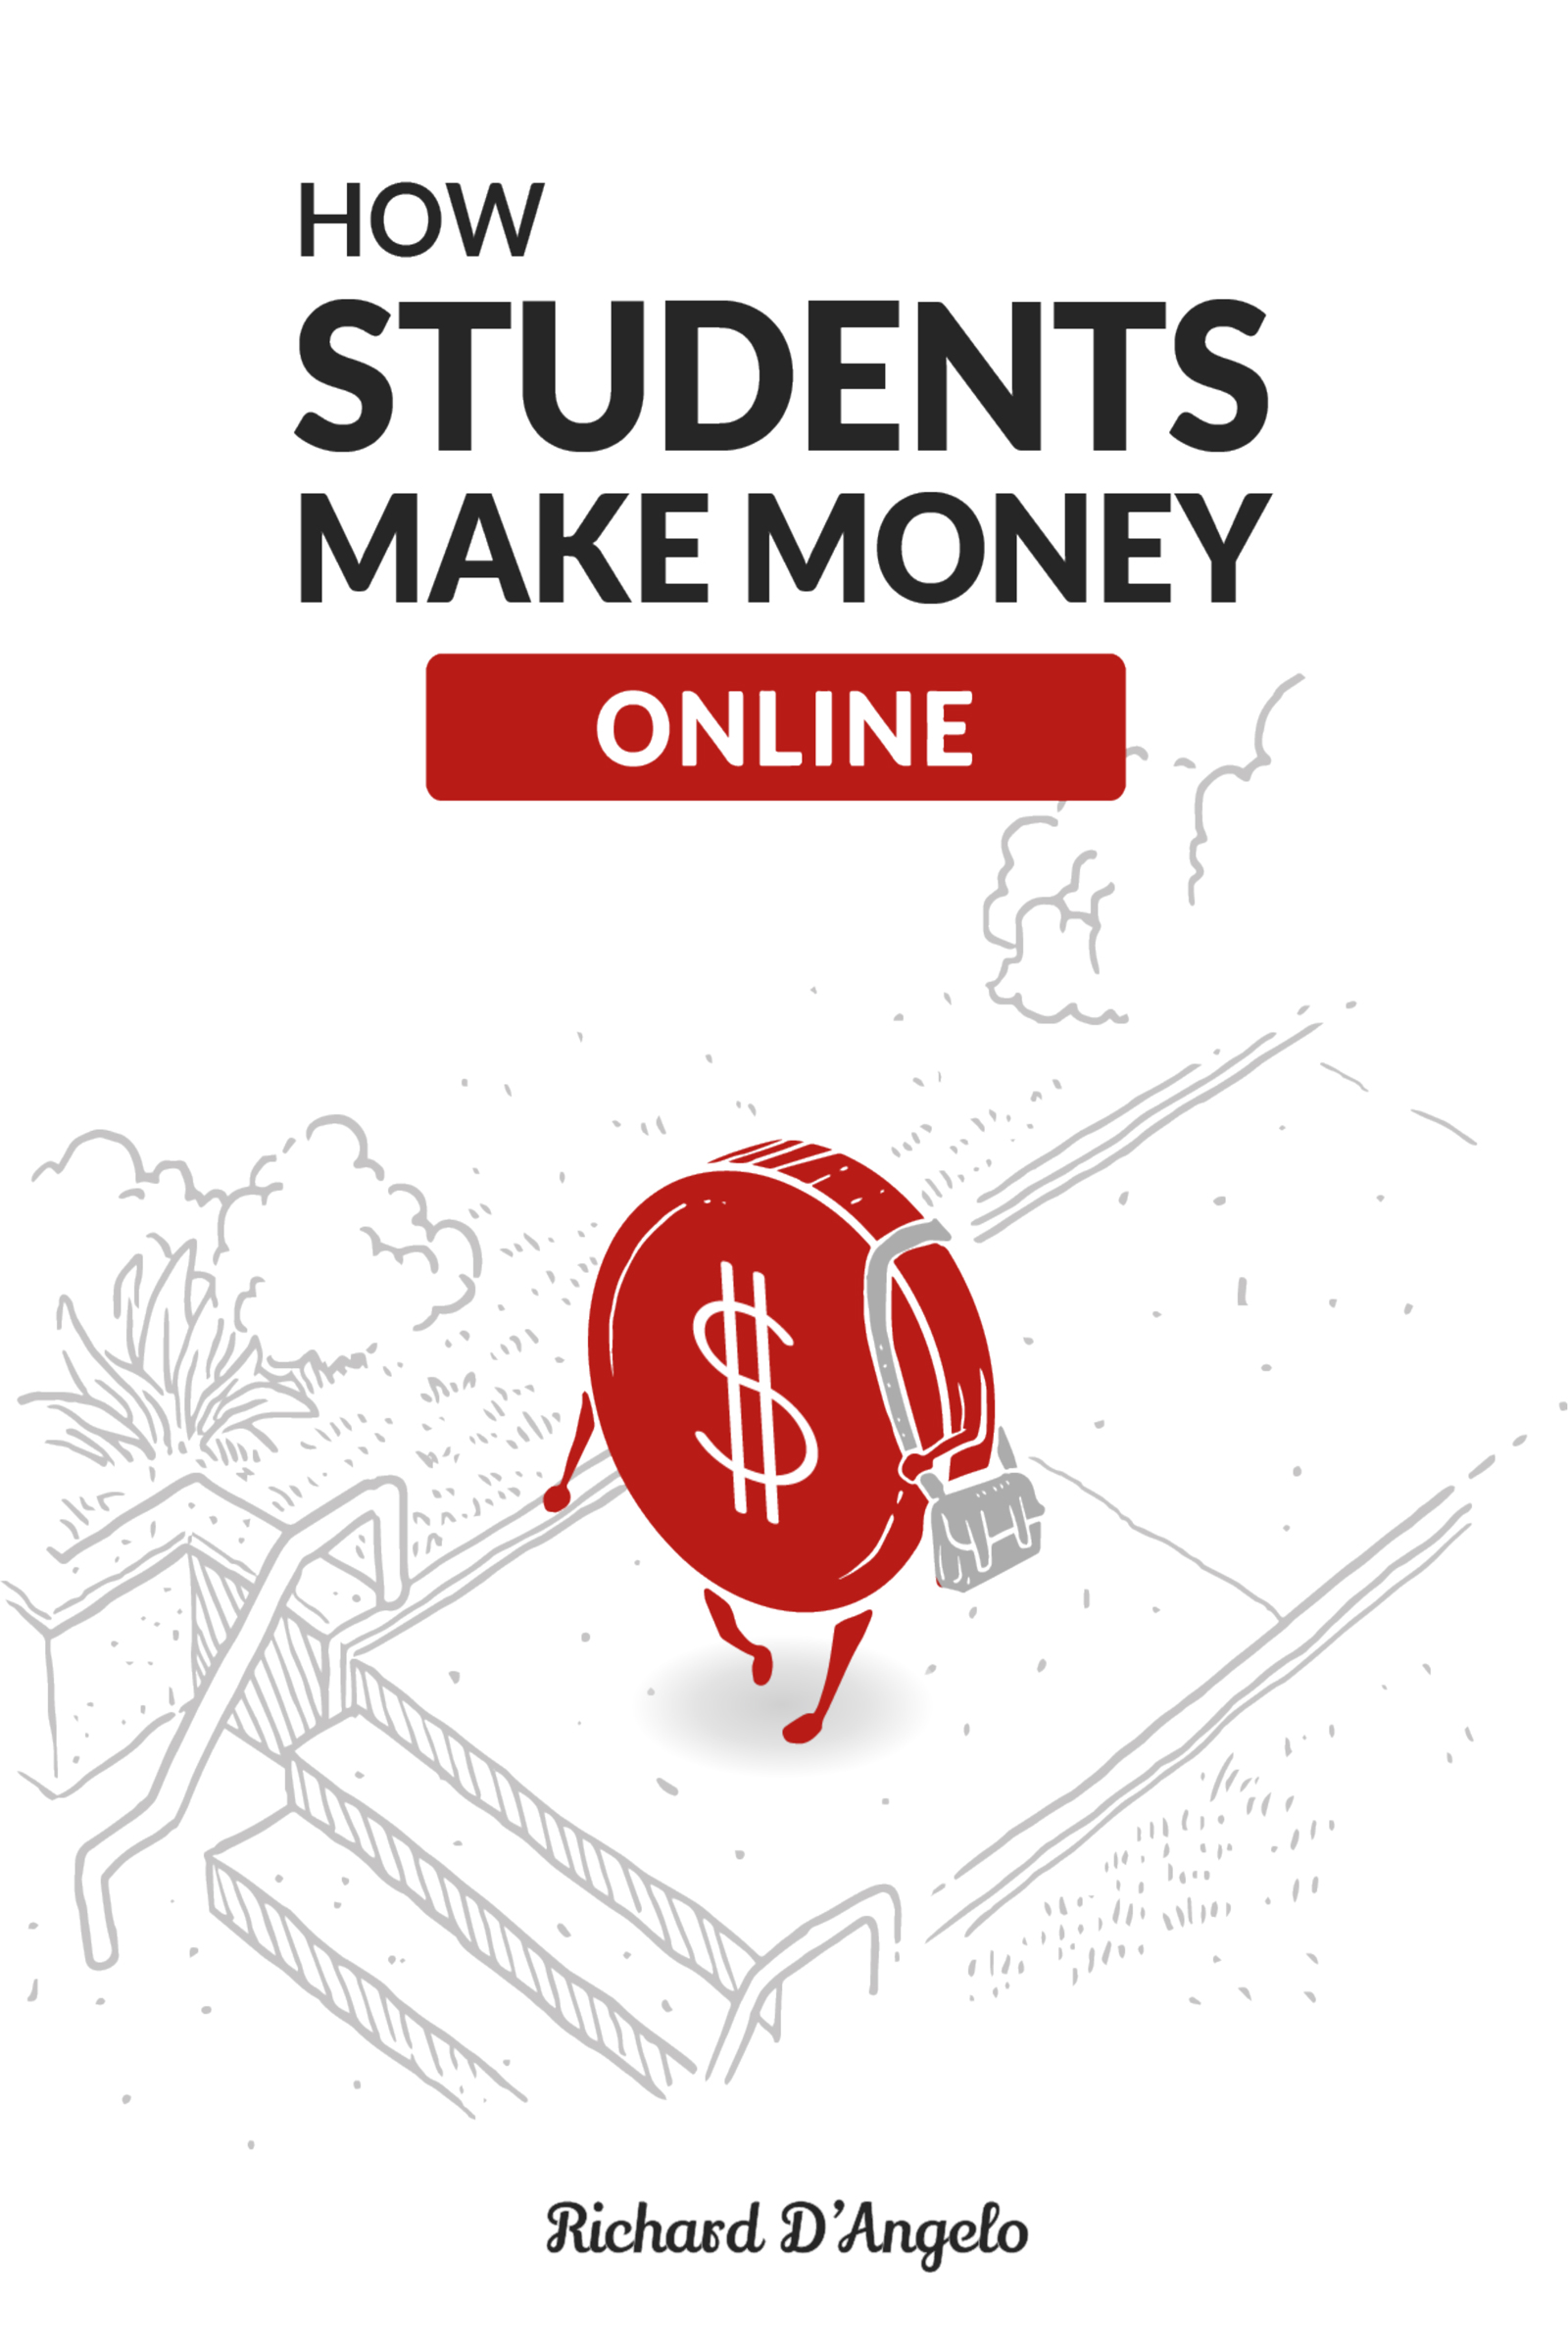 Digital book: Make Money Online Autopilot You Can Escape The 9 To 5 with MRR New